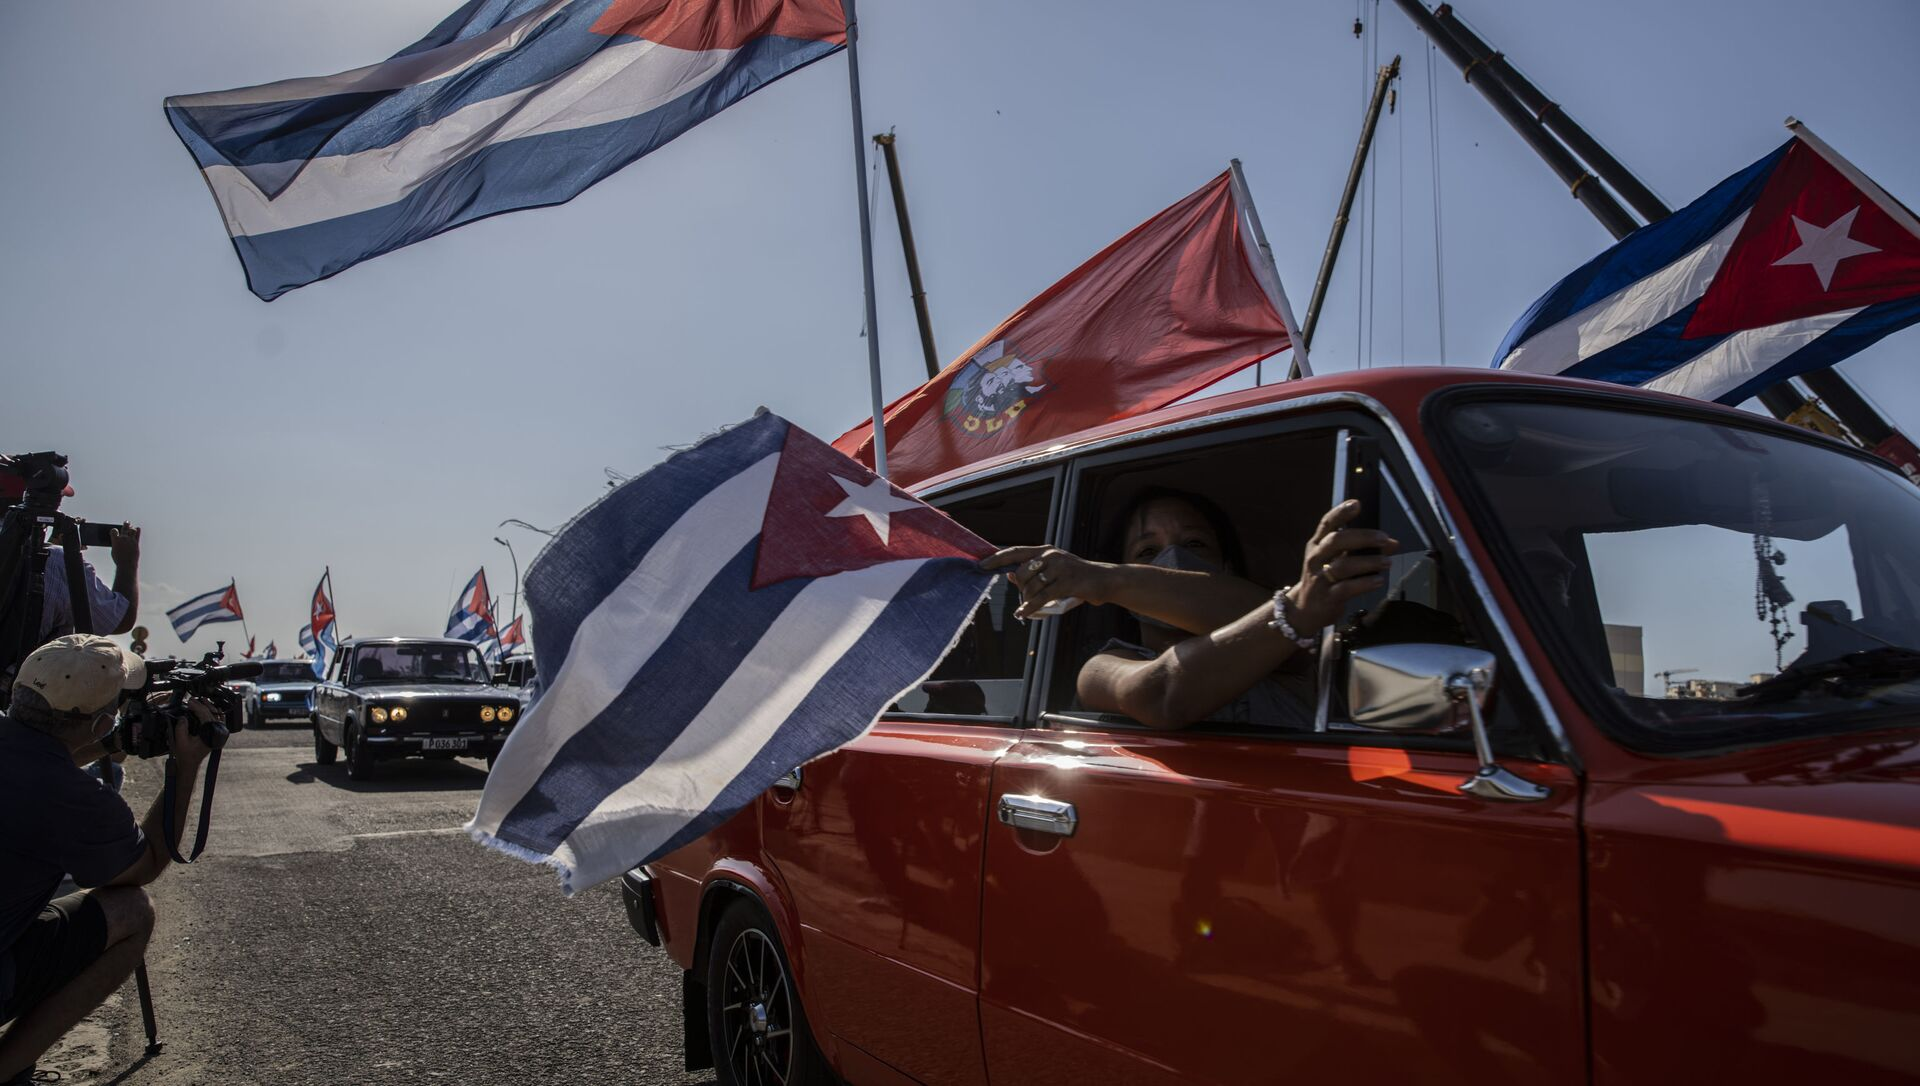 Soviet-era Lada cars flying Cuban flag drive past the American embassy during a rally calling for the end of the US blockade against the island nation in Havana, Cuba, Sunday, March 28, 2021 - Sputnik International, 1920, 24.07.2021